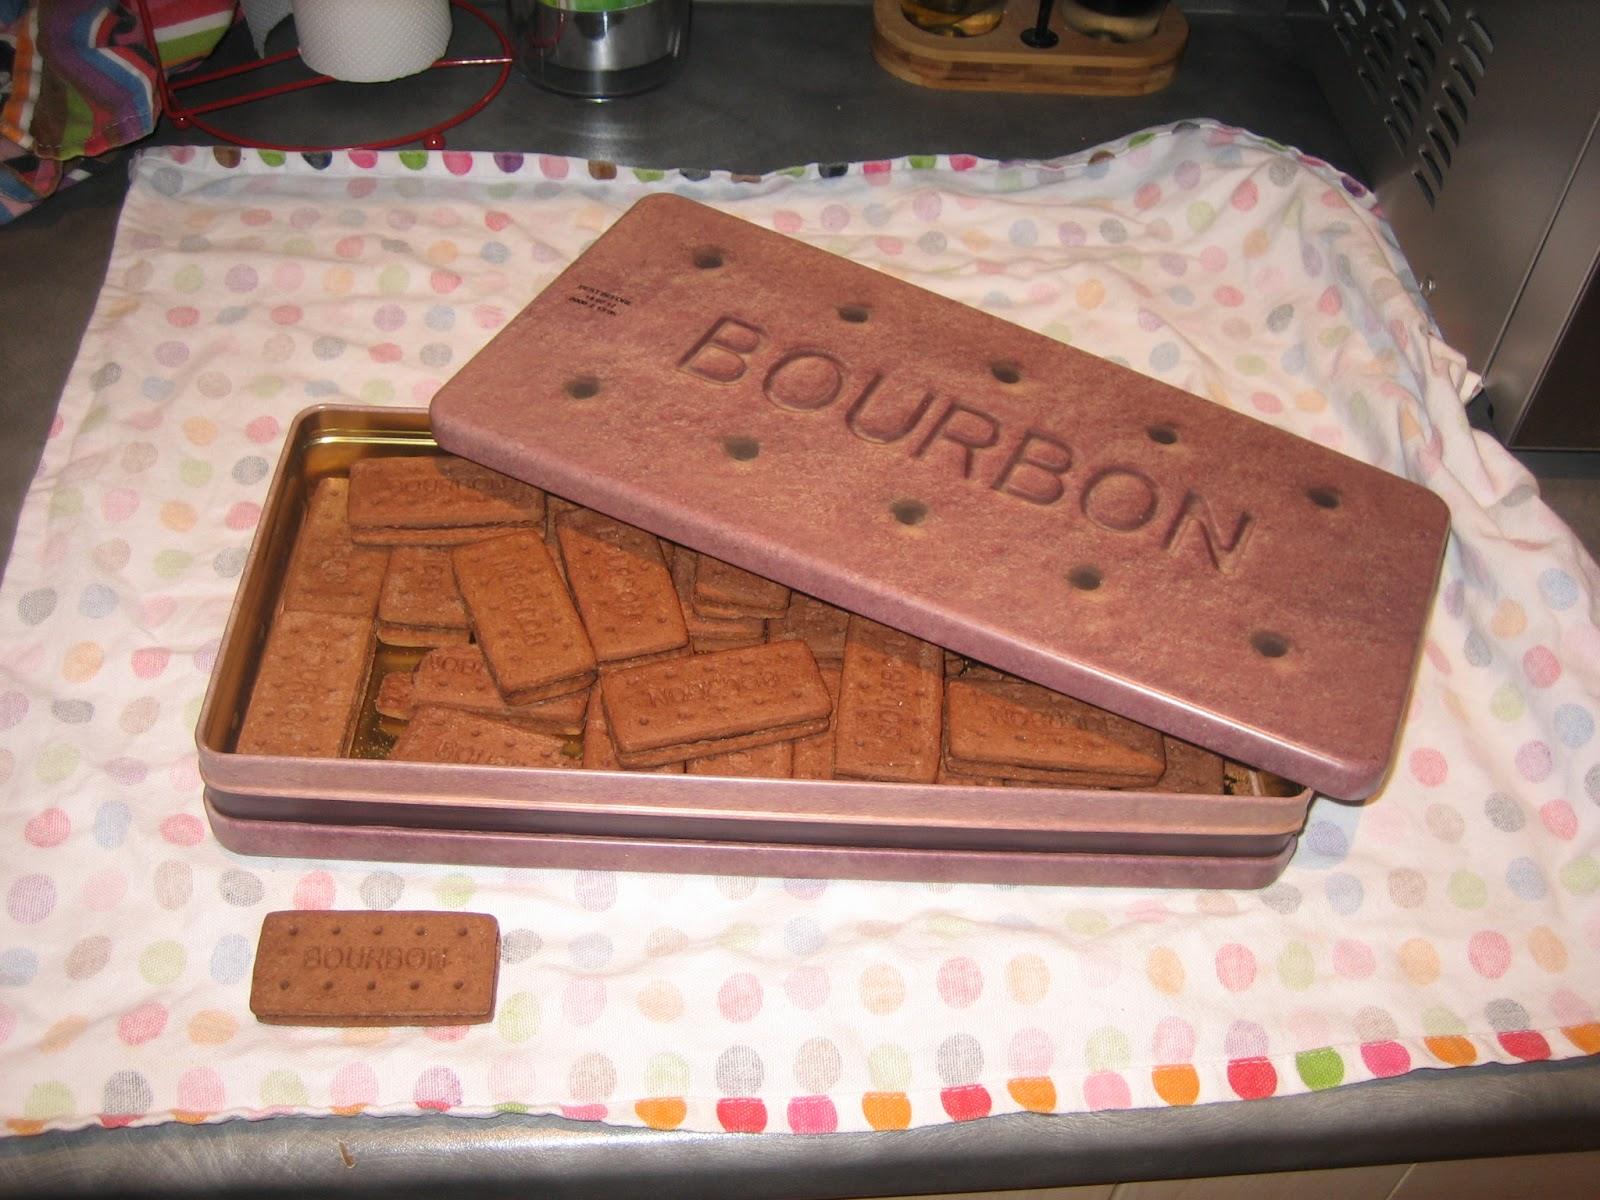 The Tin S Dimensions Are Approximately 5x Those Of Biscuits Inside Contents Shown For Scale